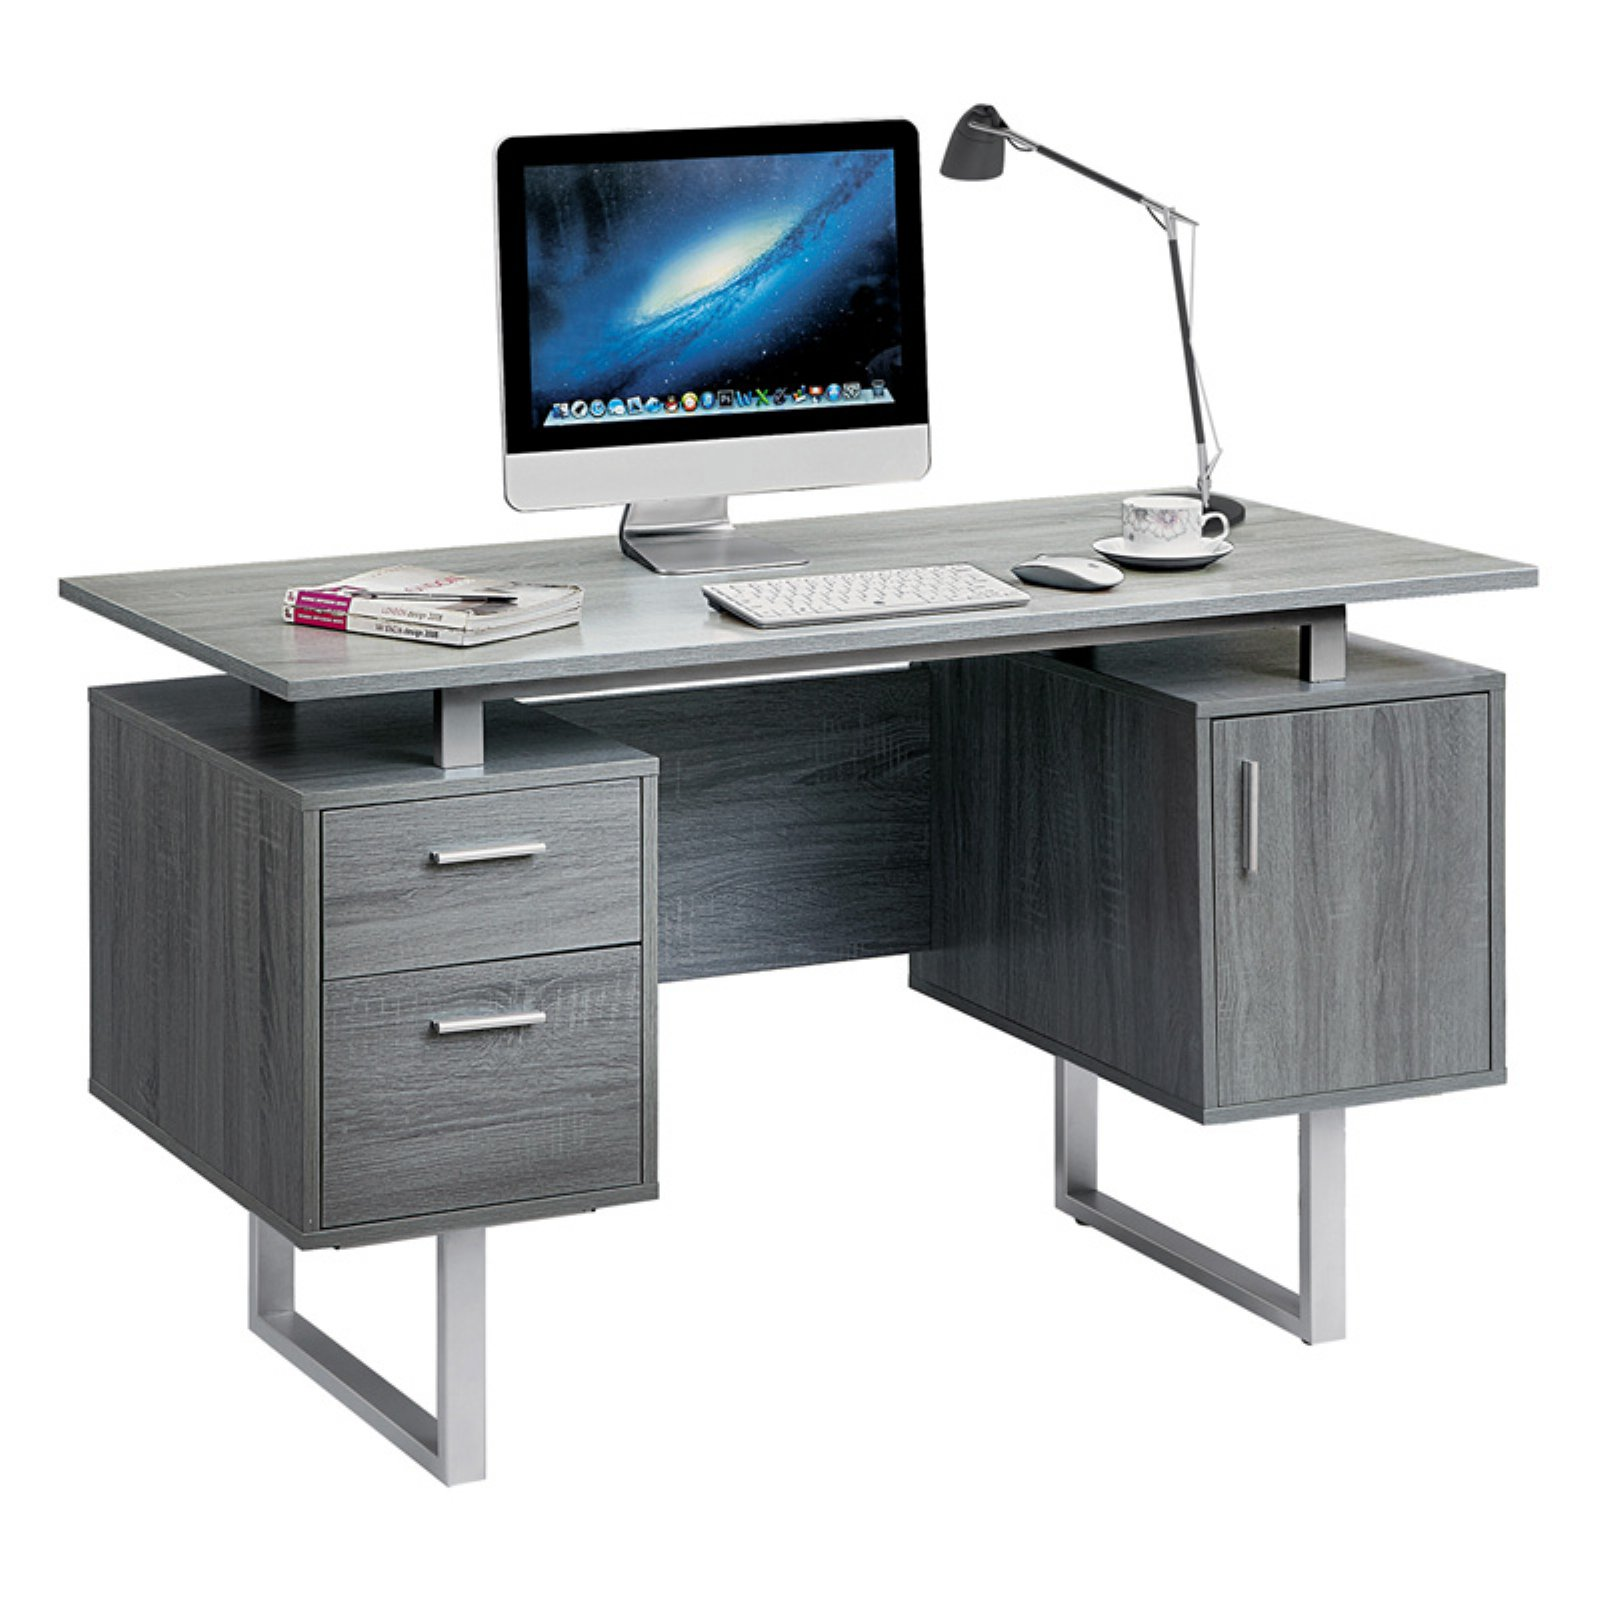 Mobili Furniture Techni Mobili Modern Office Desk With Storage Grey